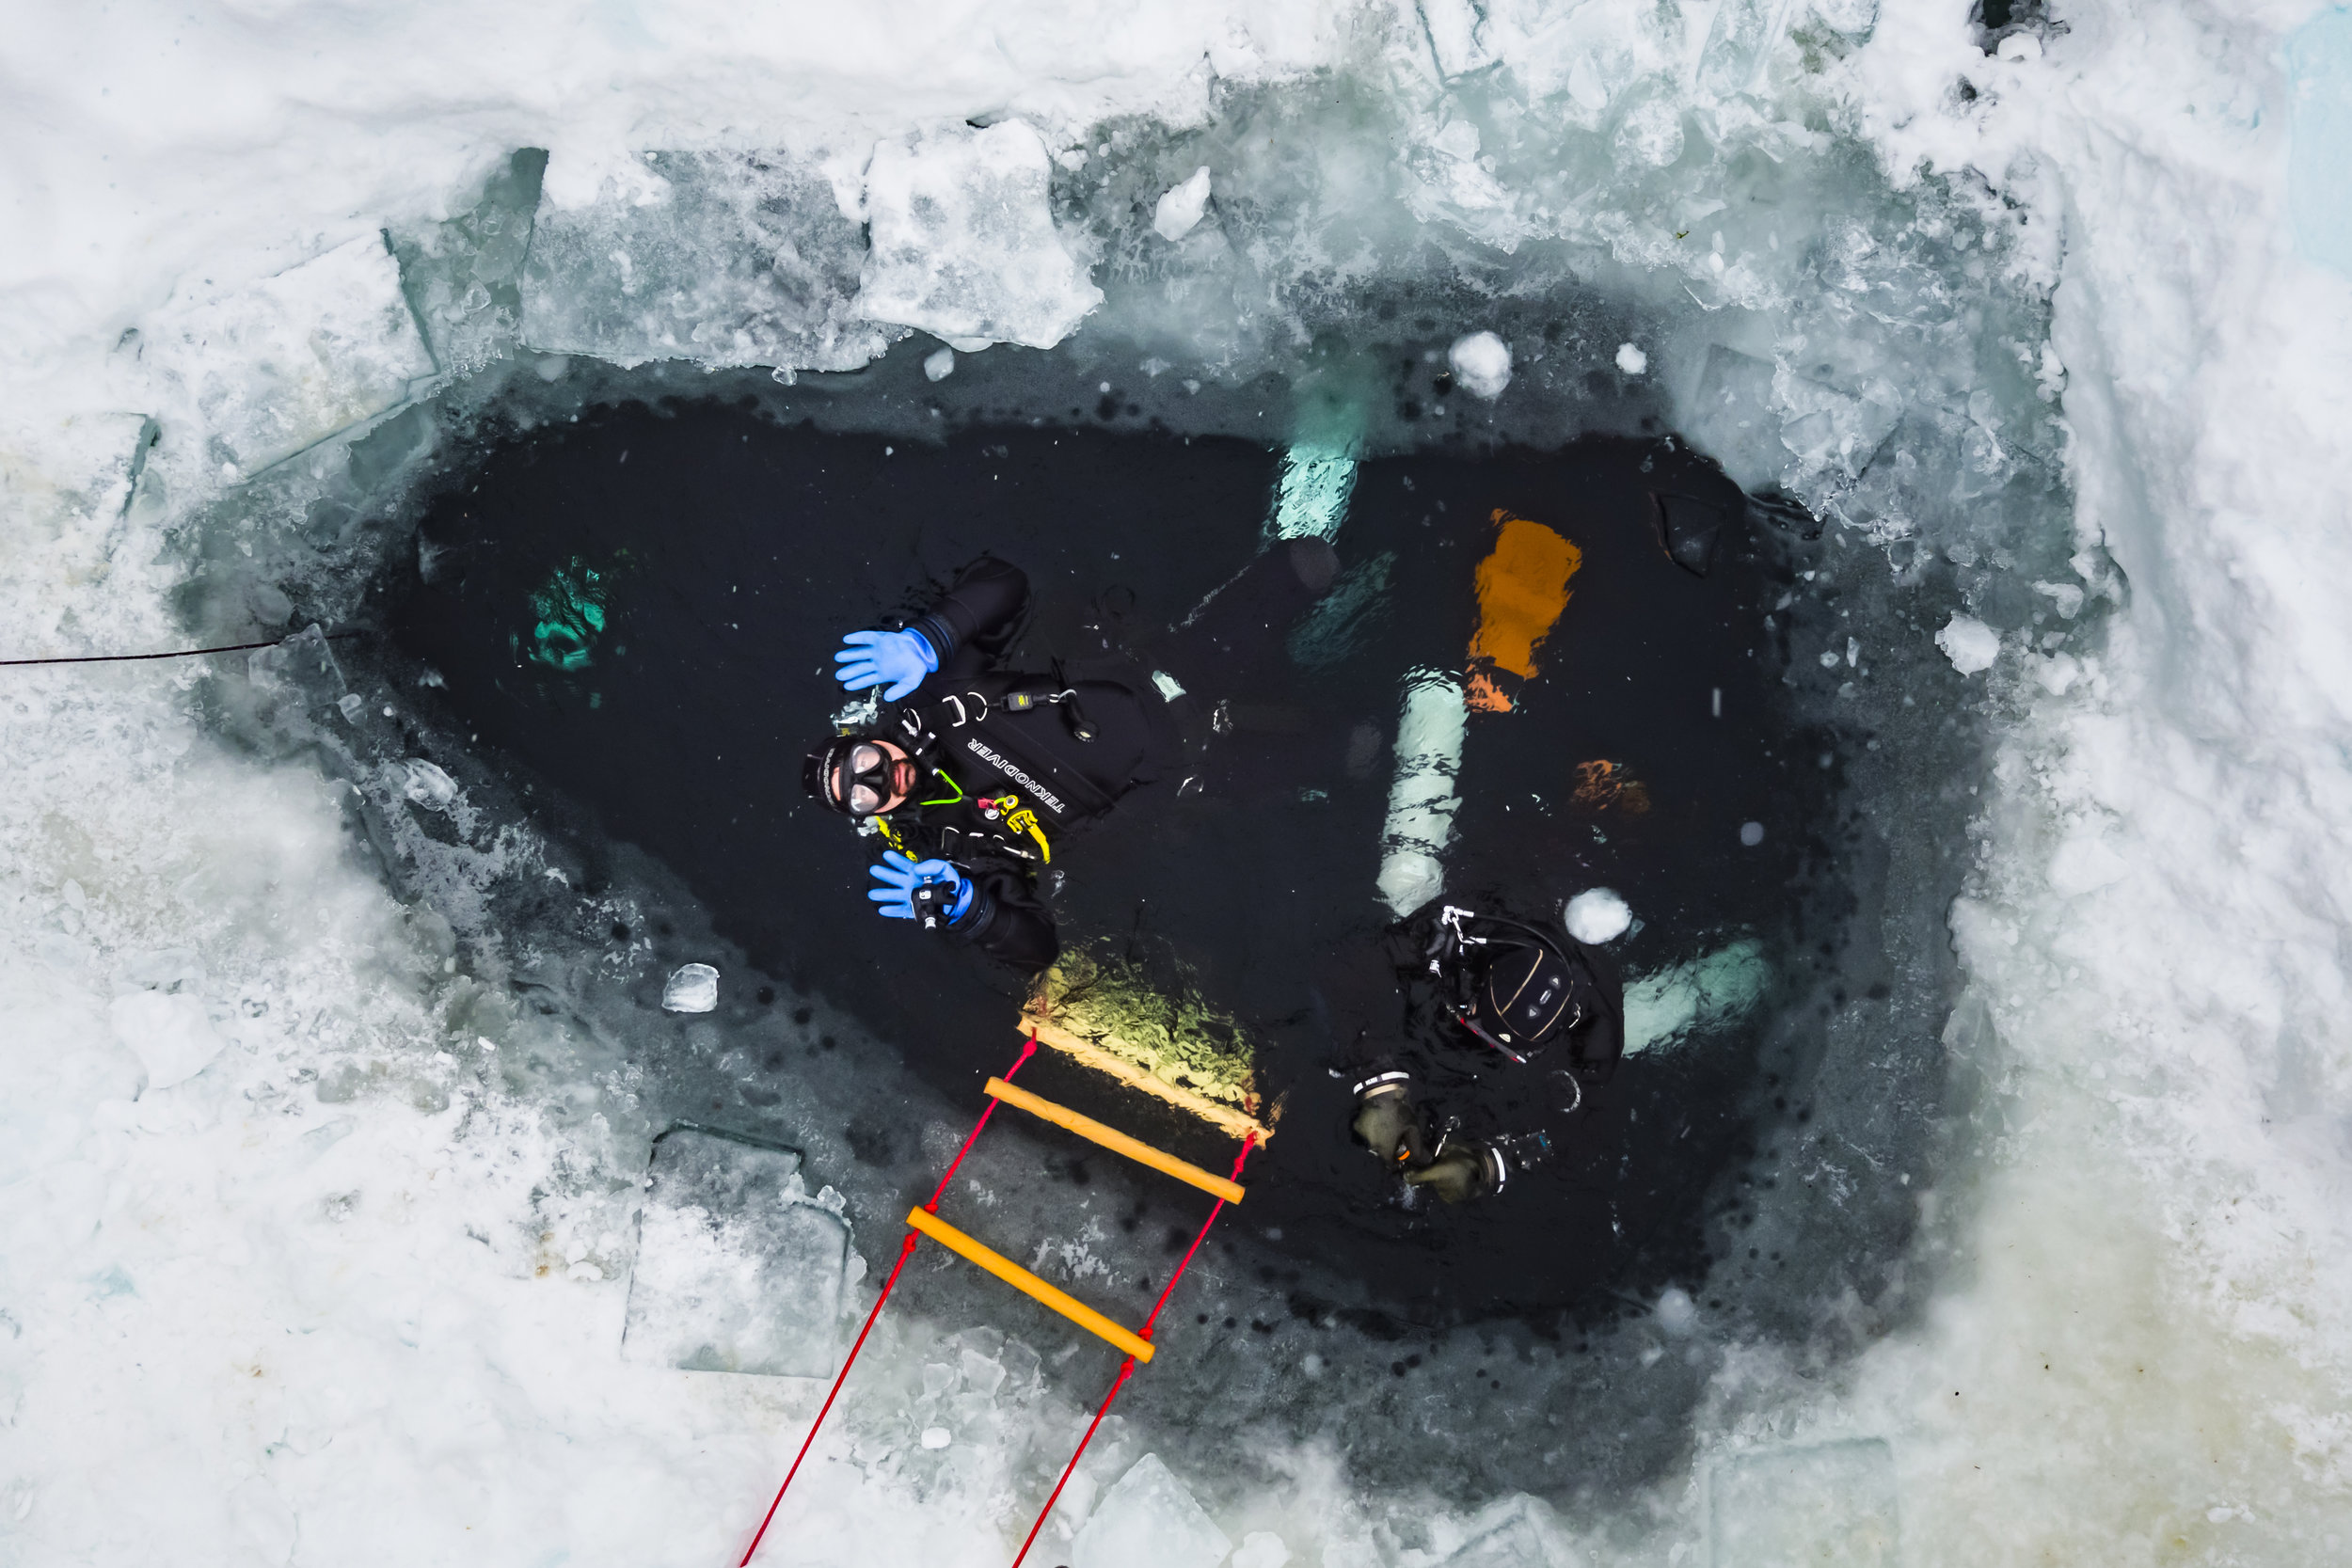 Divers enter the freezing water of the alpine Lioson Lake, 1900m, in Ormont-Dessous, Switzerland, Saturday, February 10, 2018. After a one hour hike in snow shoes the group of 18 divers enjoyed dives down to 15m depth below a layer of ice of almost 1m thickness. (KEYSTONE/Valentin Flauraud)